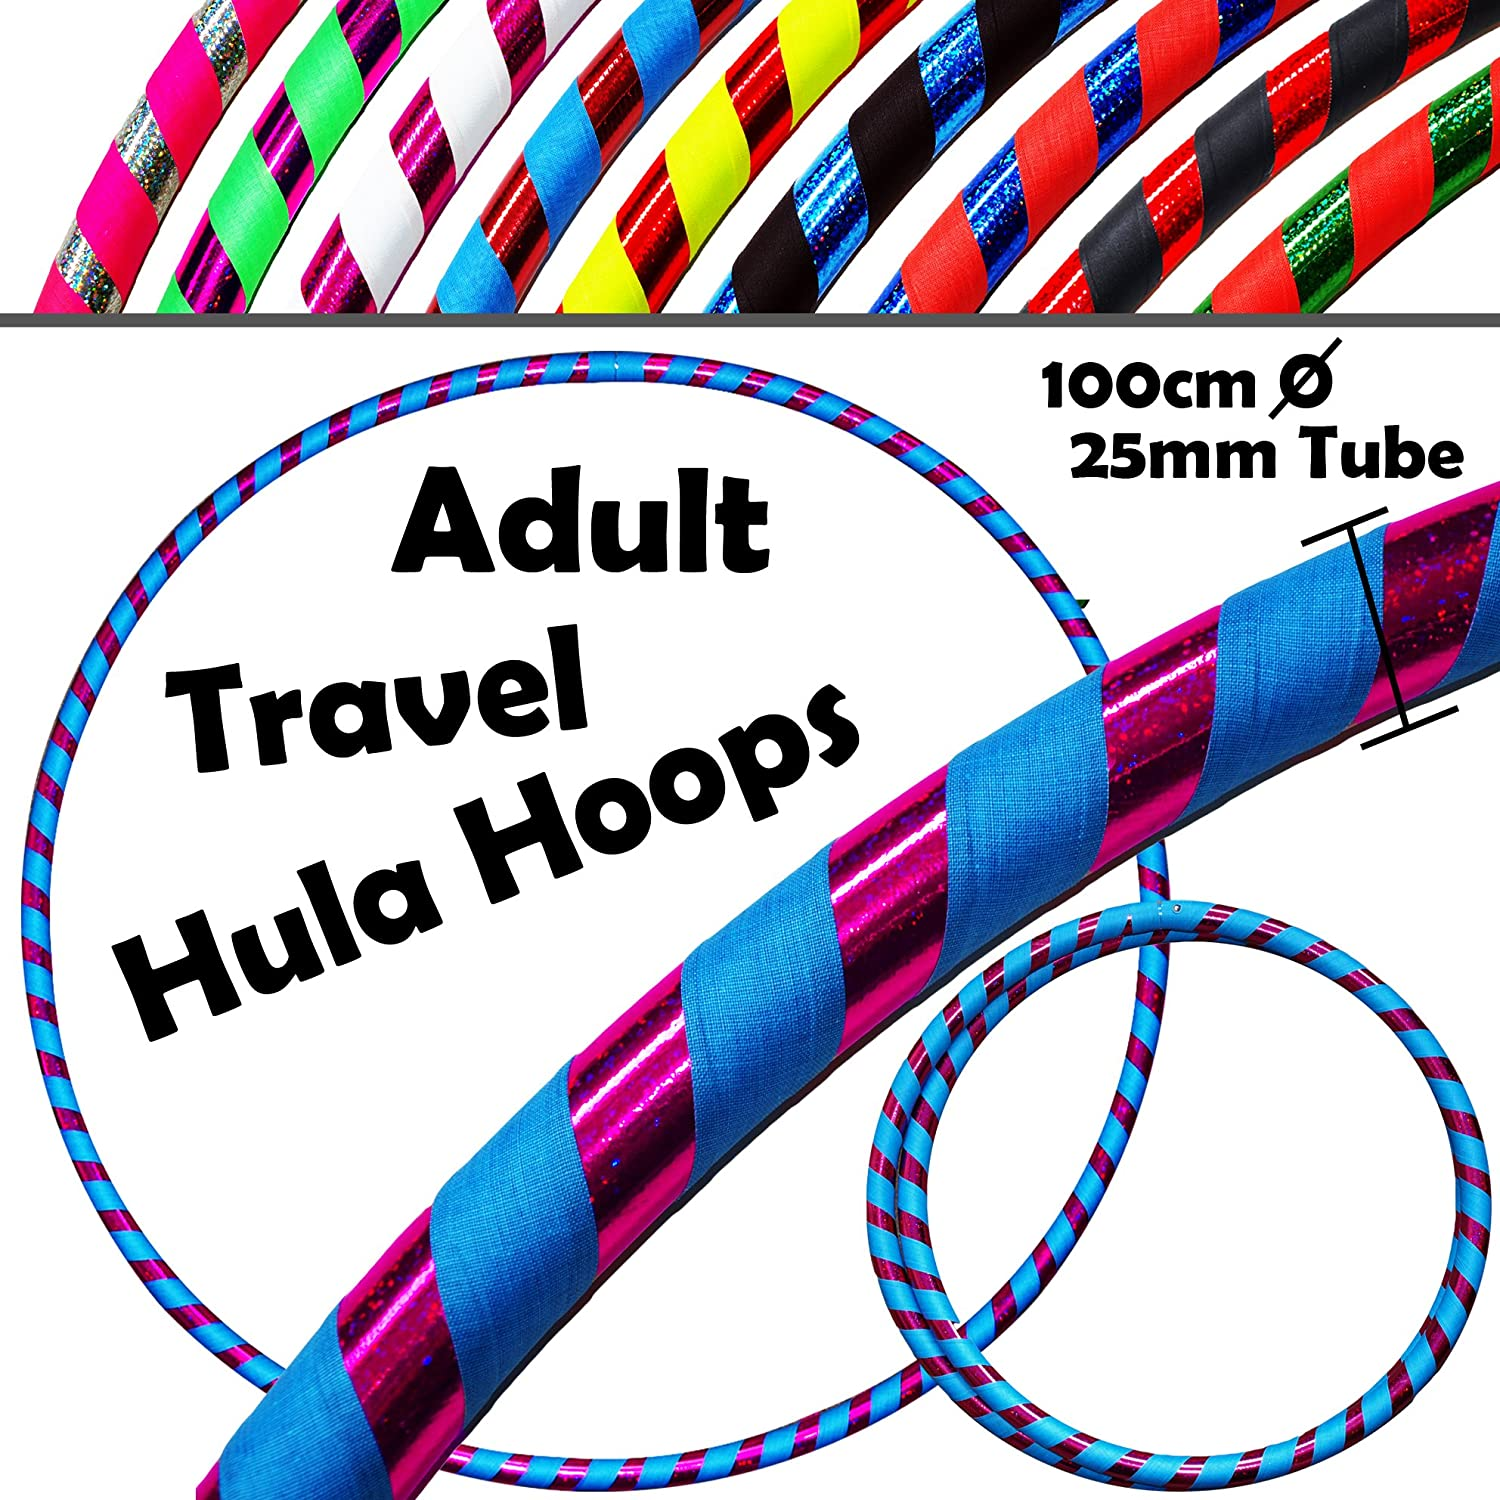 PRO Hula Hoops (Ultra-Grip/Glitter Deco) Weighted TRAVEL Hula Hoop (100cm/39') Hula Hoops For Exercise, Dance & Fitness! (640g) NO Instructions Needed - Same Day Dispatch.! Flames N Games